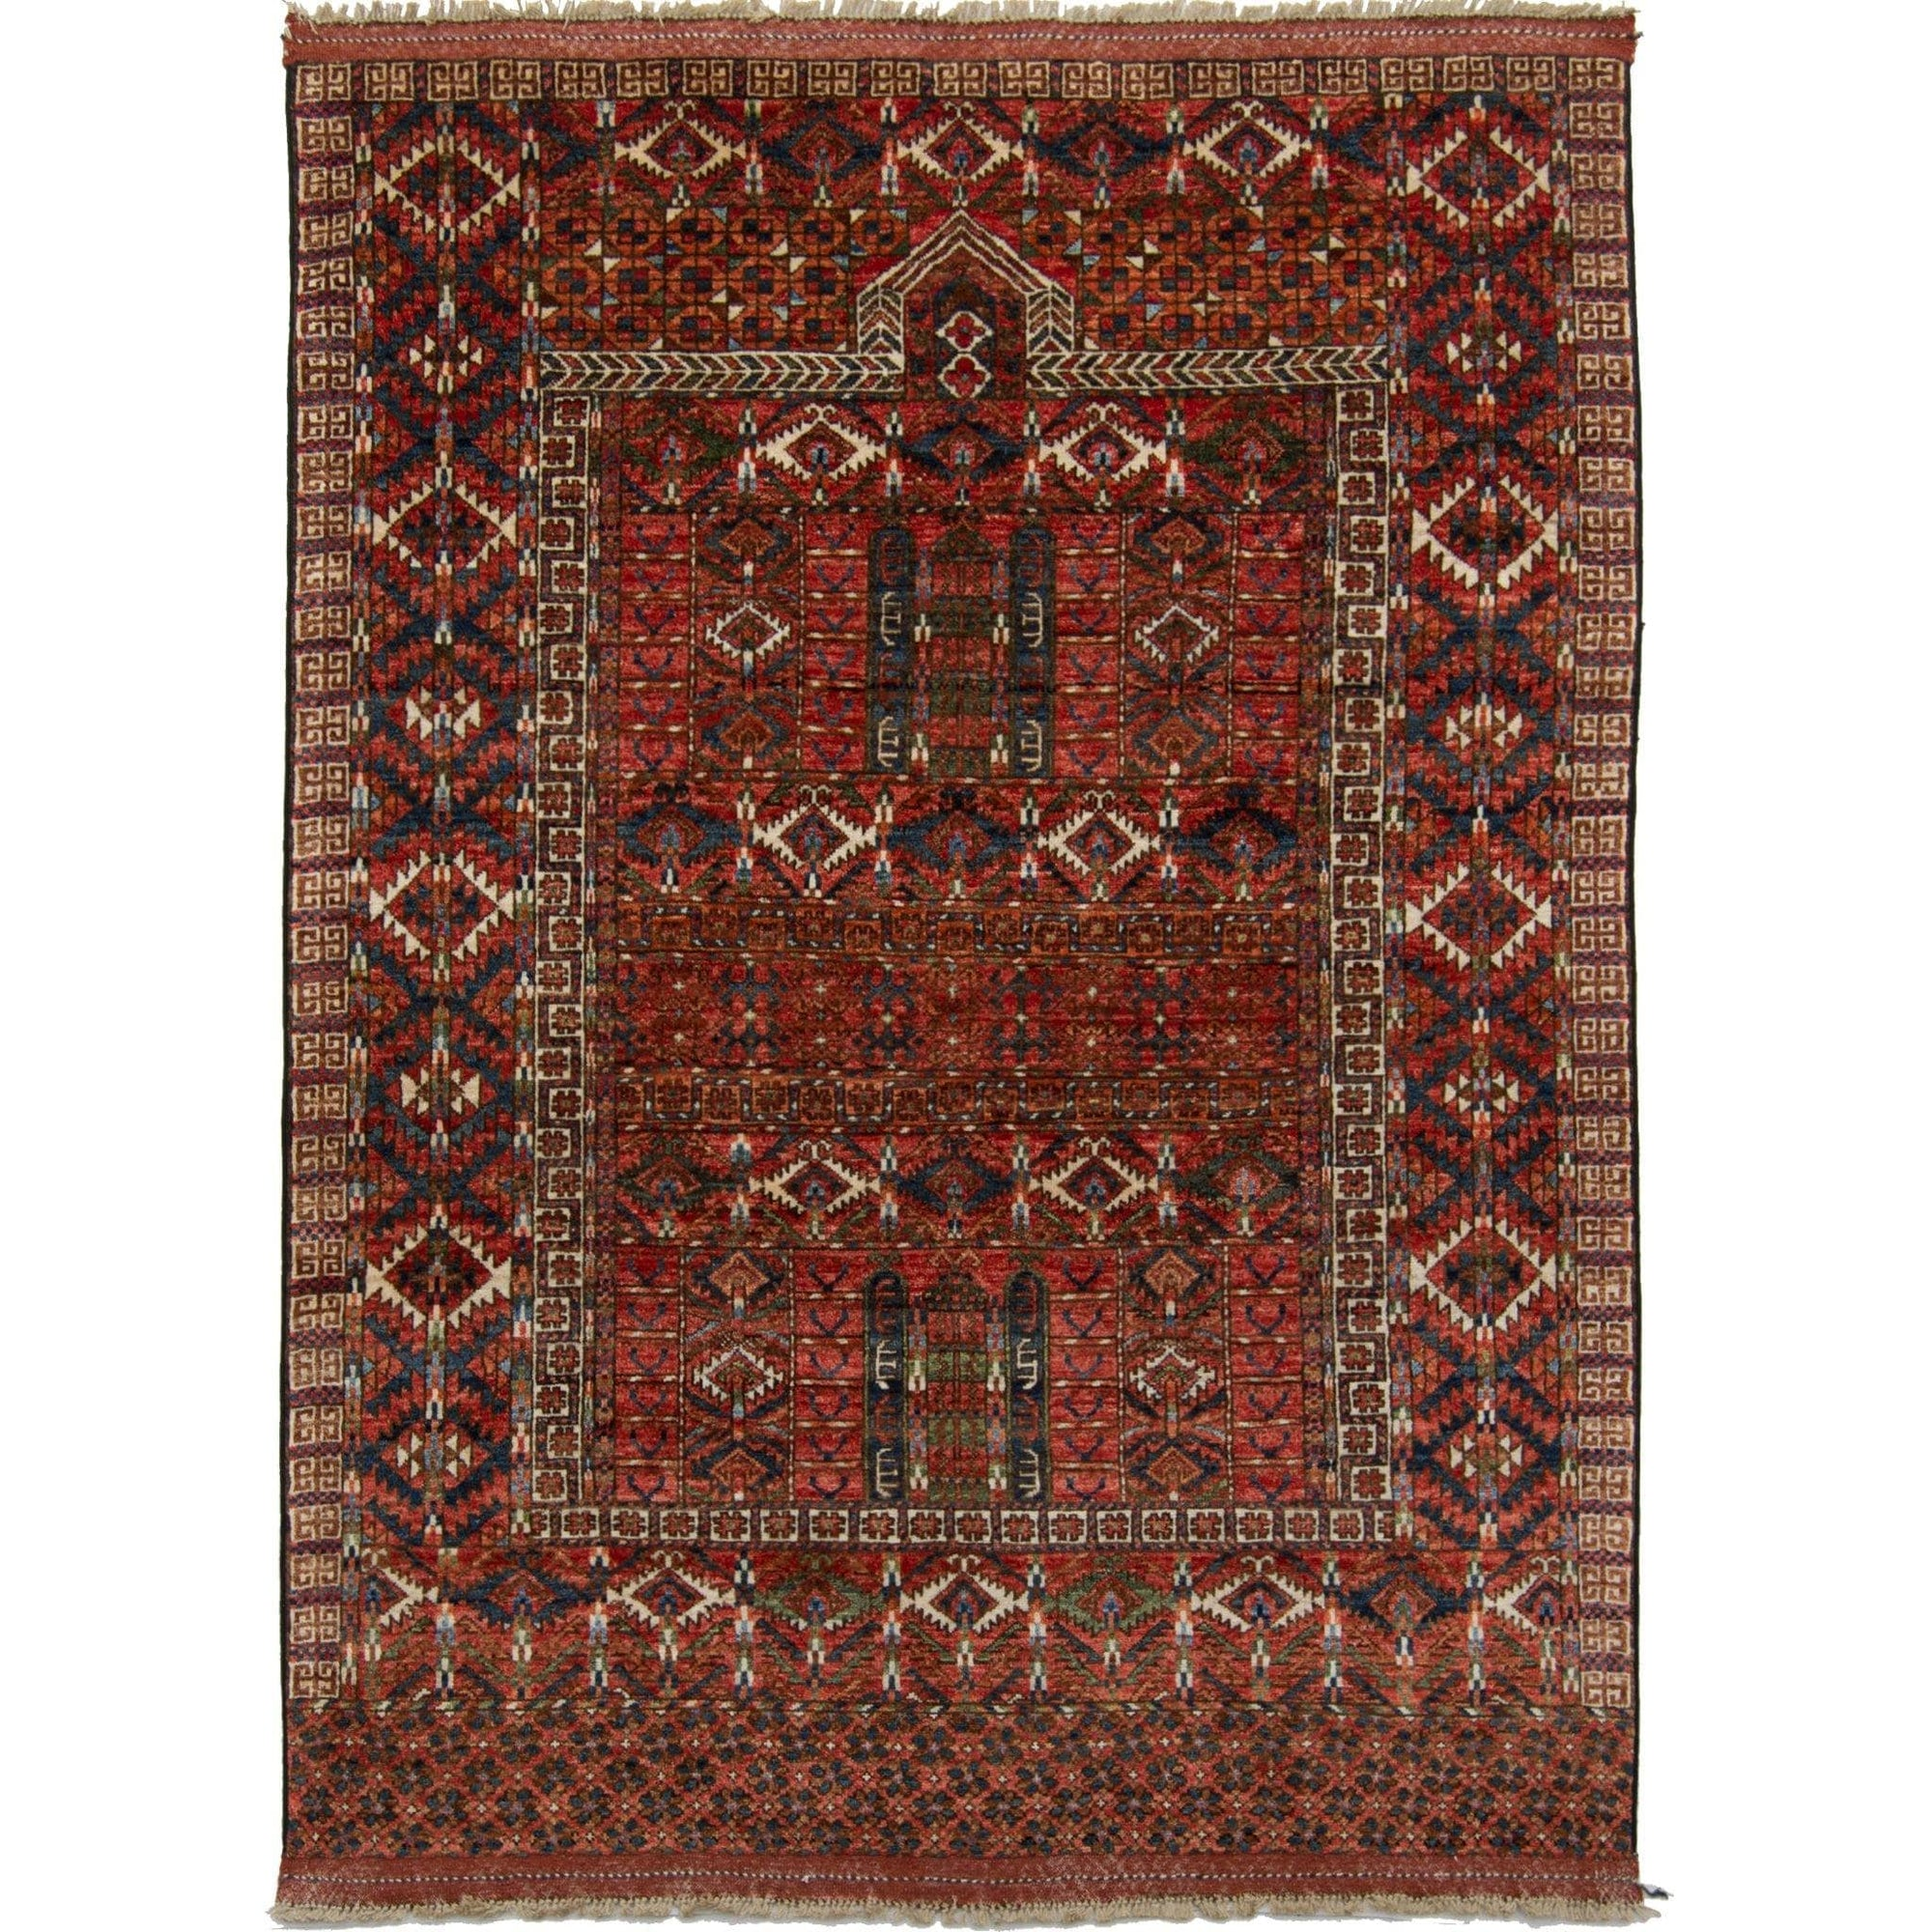 Fine Hand-knotted Tribal Wool Rug 154cm x 198cm Persian-Rug | House-of-Haghi | NewMarket | Auckland | NZ | Handmade Persian Rugs | Hand Knotted Persian Rugs